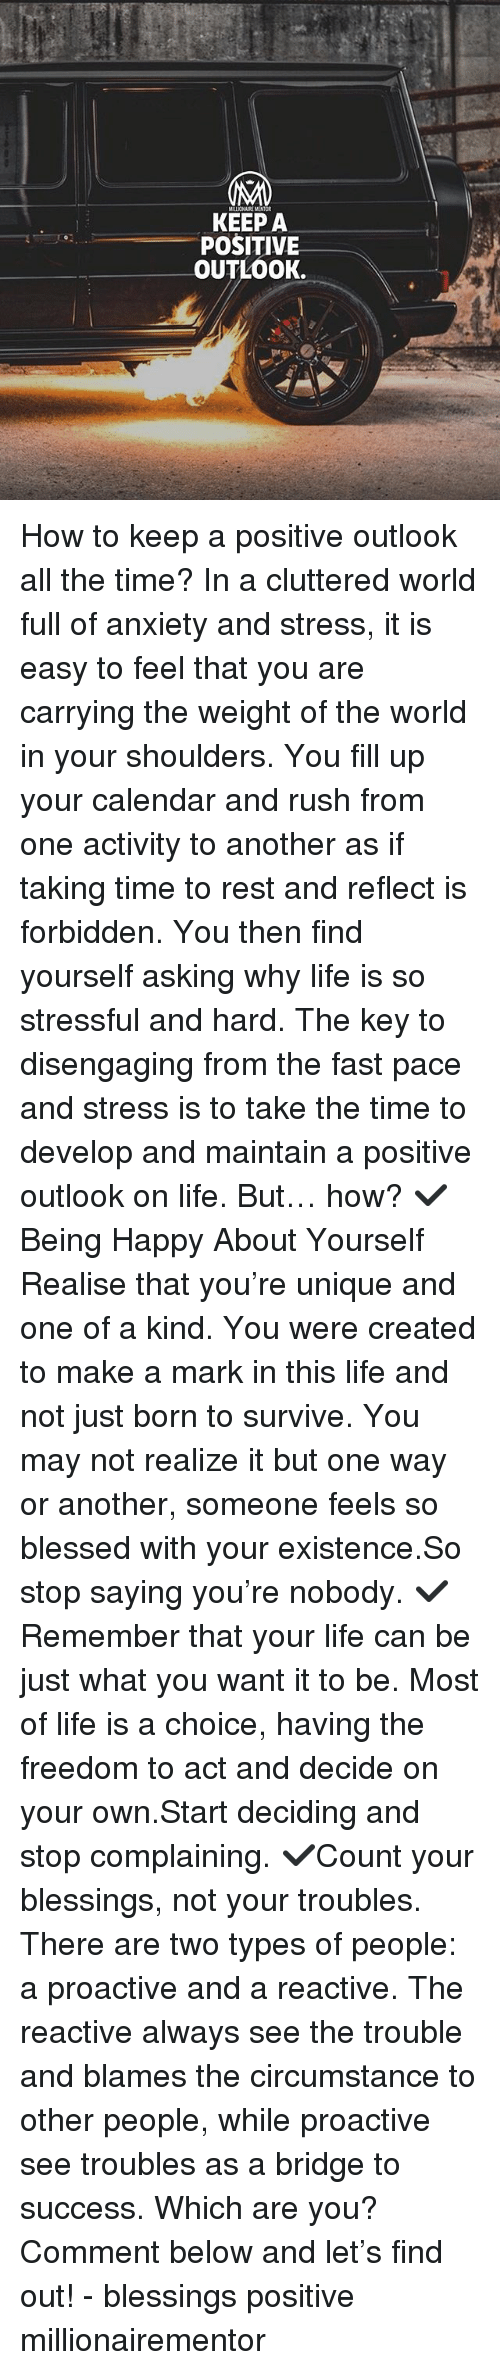 Blessed, Life, and Memes: POSITIVE  OUTLOOK. How to keep a positive outlook all the time? In a cluttered world full of anxiety and stress, it is easy to feel that you are carrying the weight of the world in your shoulders. You fill up your calendar and rush from one activity to another as if taking time to rest and reflect is forbidden. You then find yourself asking why life is so stressful and hard. The key to disengaging from the fast pace and stress is to take the time to develop and maintain a positive outlook on life. But… how? ✔️Being Happy About Yourself Realise that you're unique and one of a kind. You were created to make a mark in this life and not just born to survive. You may not realize it but one way or another, someone feels so blessed with your existence.So stop saying you're nobody. ✔️Remember that your life can be just what you want it to be. Most of life is a choice, having the freedom to act and decide on your own.Start deciding and stop complaining. ✔️Count your blessings, not your troubles. There are two types of people: a proactive and a reactive. The reactive always see the trouble and blames the circumstance to other people, while proactive see troubles as a bridge to success. Which are you? Comment below and let's find out! - blessings positive millionairementor